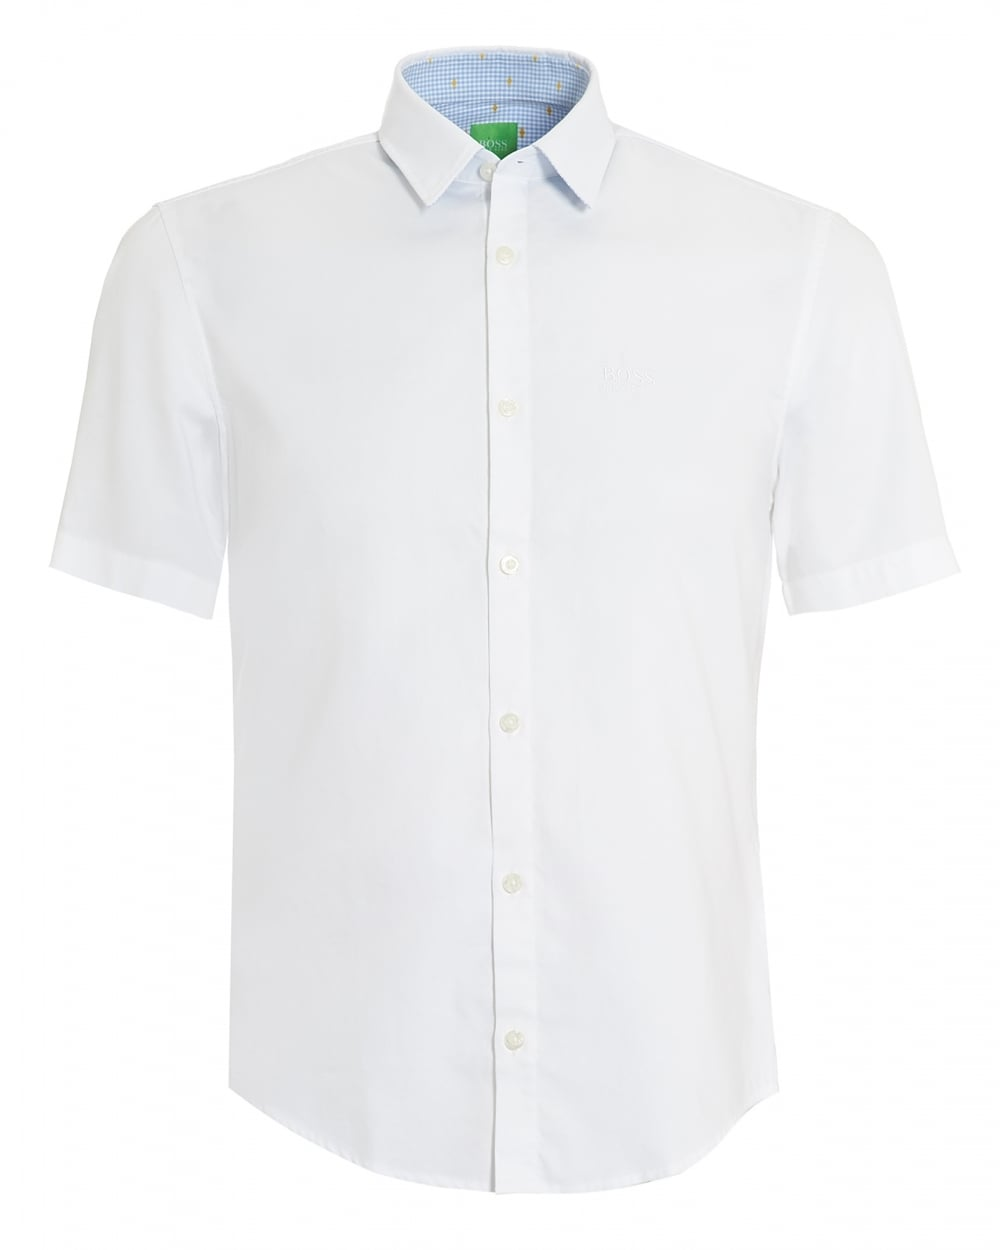 991d229b Hugo Boss Green Mens C-Busterino Plain White Short Sleeve Shirt